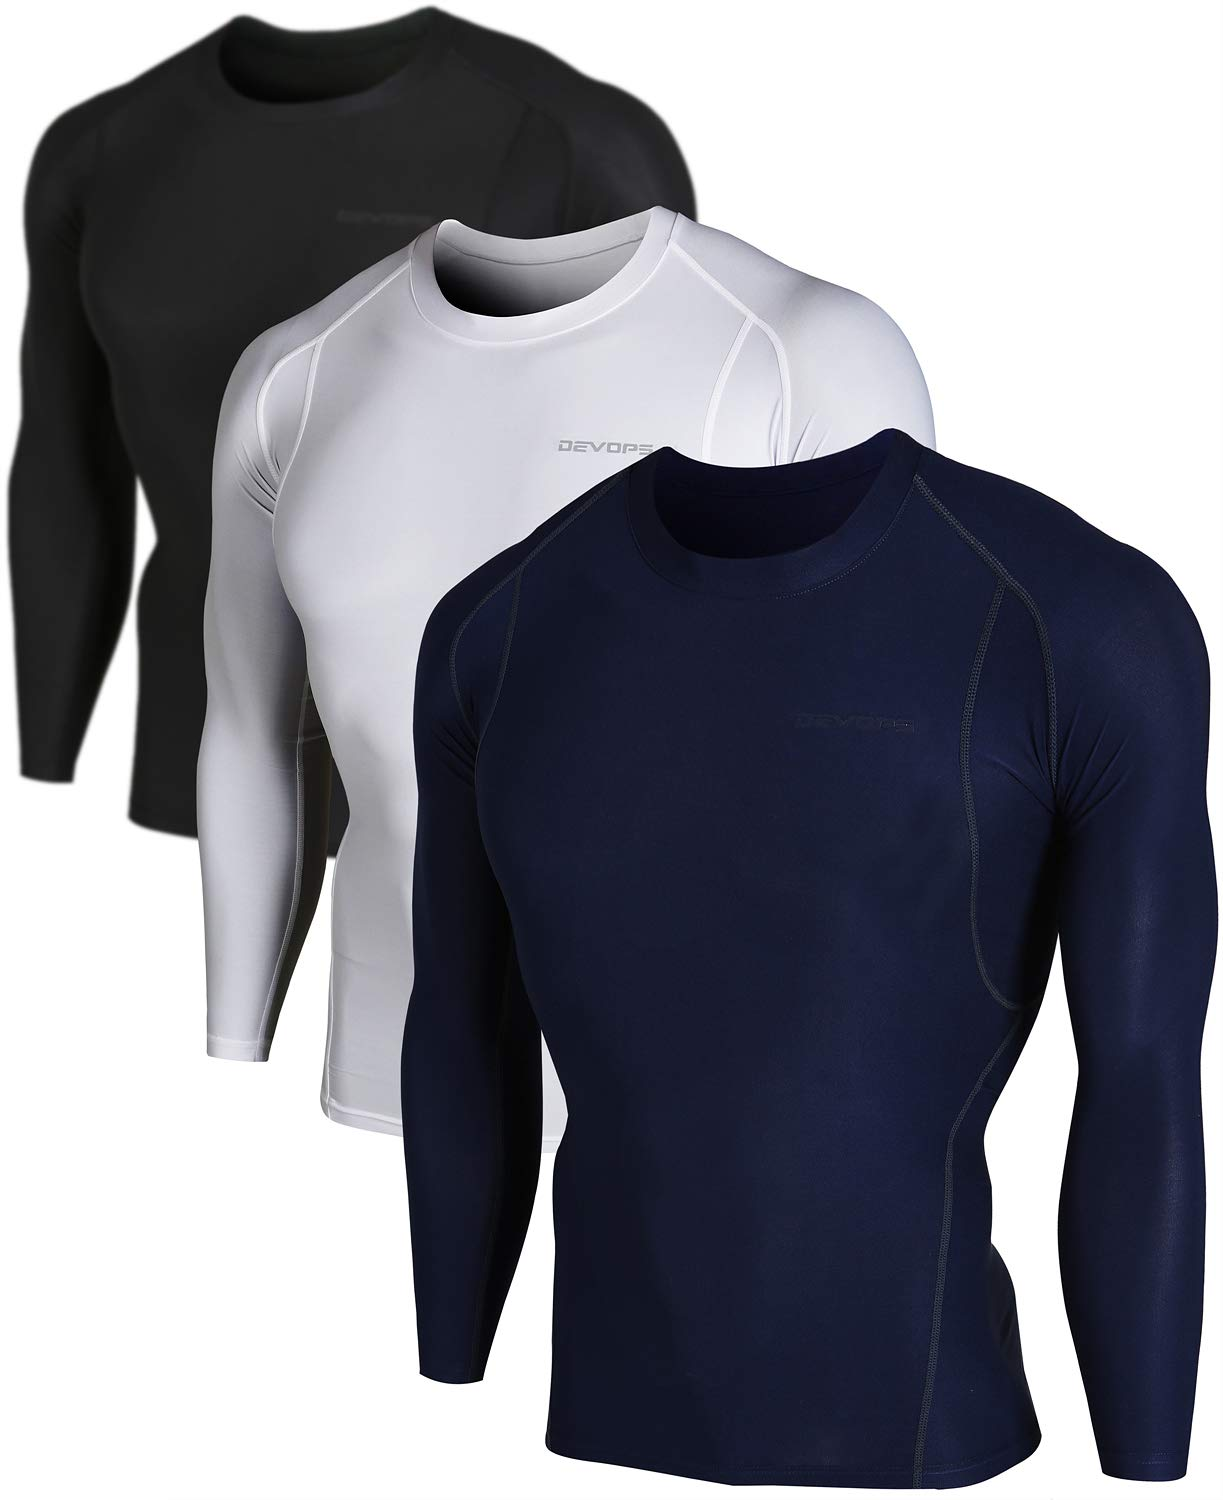 DEVOPS Men's 2~3 Pack Cool Dry Athletic Compression Long Sleeve Baselayer Workout T-Shirts